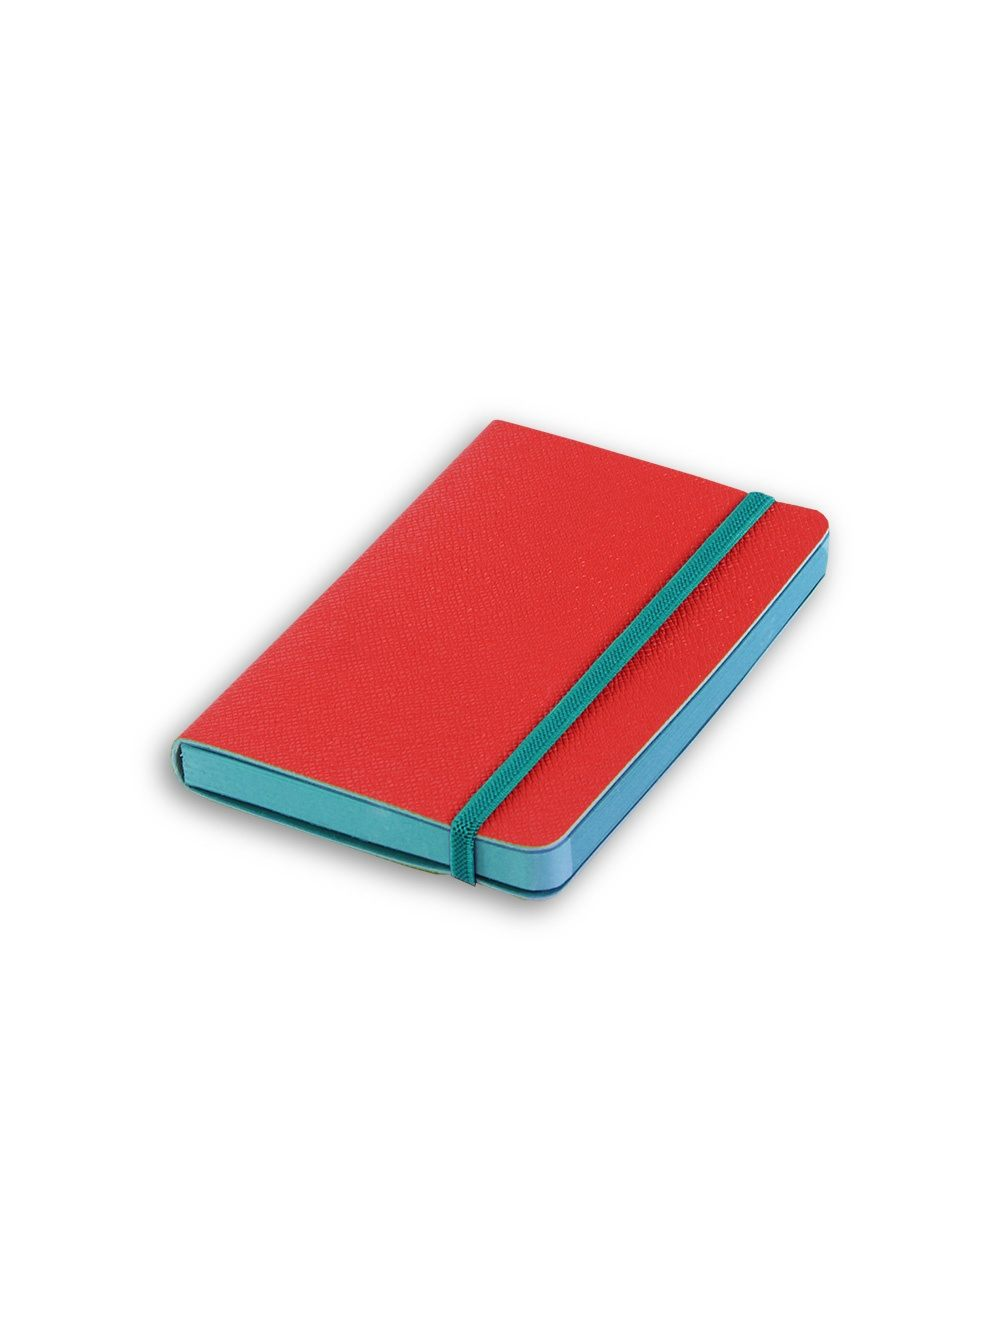 Elastic+ Journal 9 X 14 Cm - Coloured Internal Paper - Cherry Red